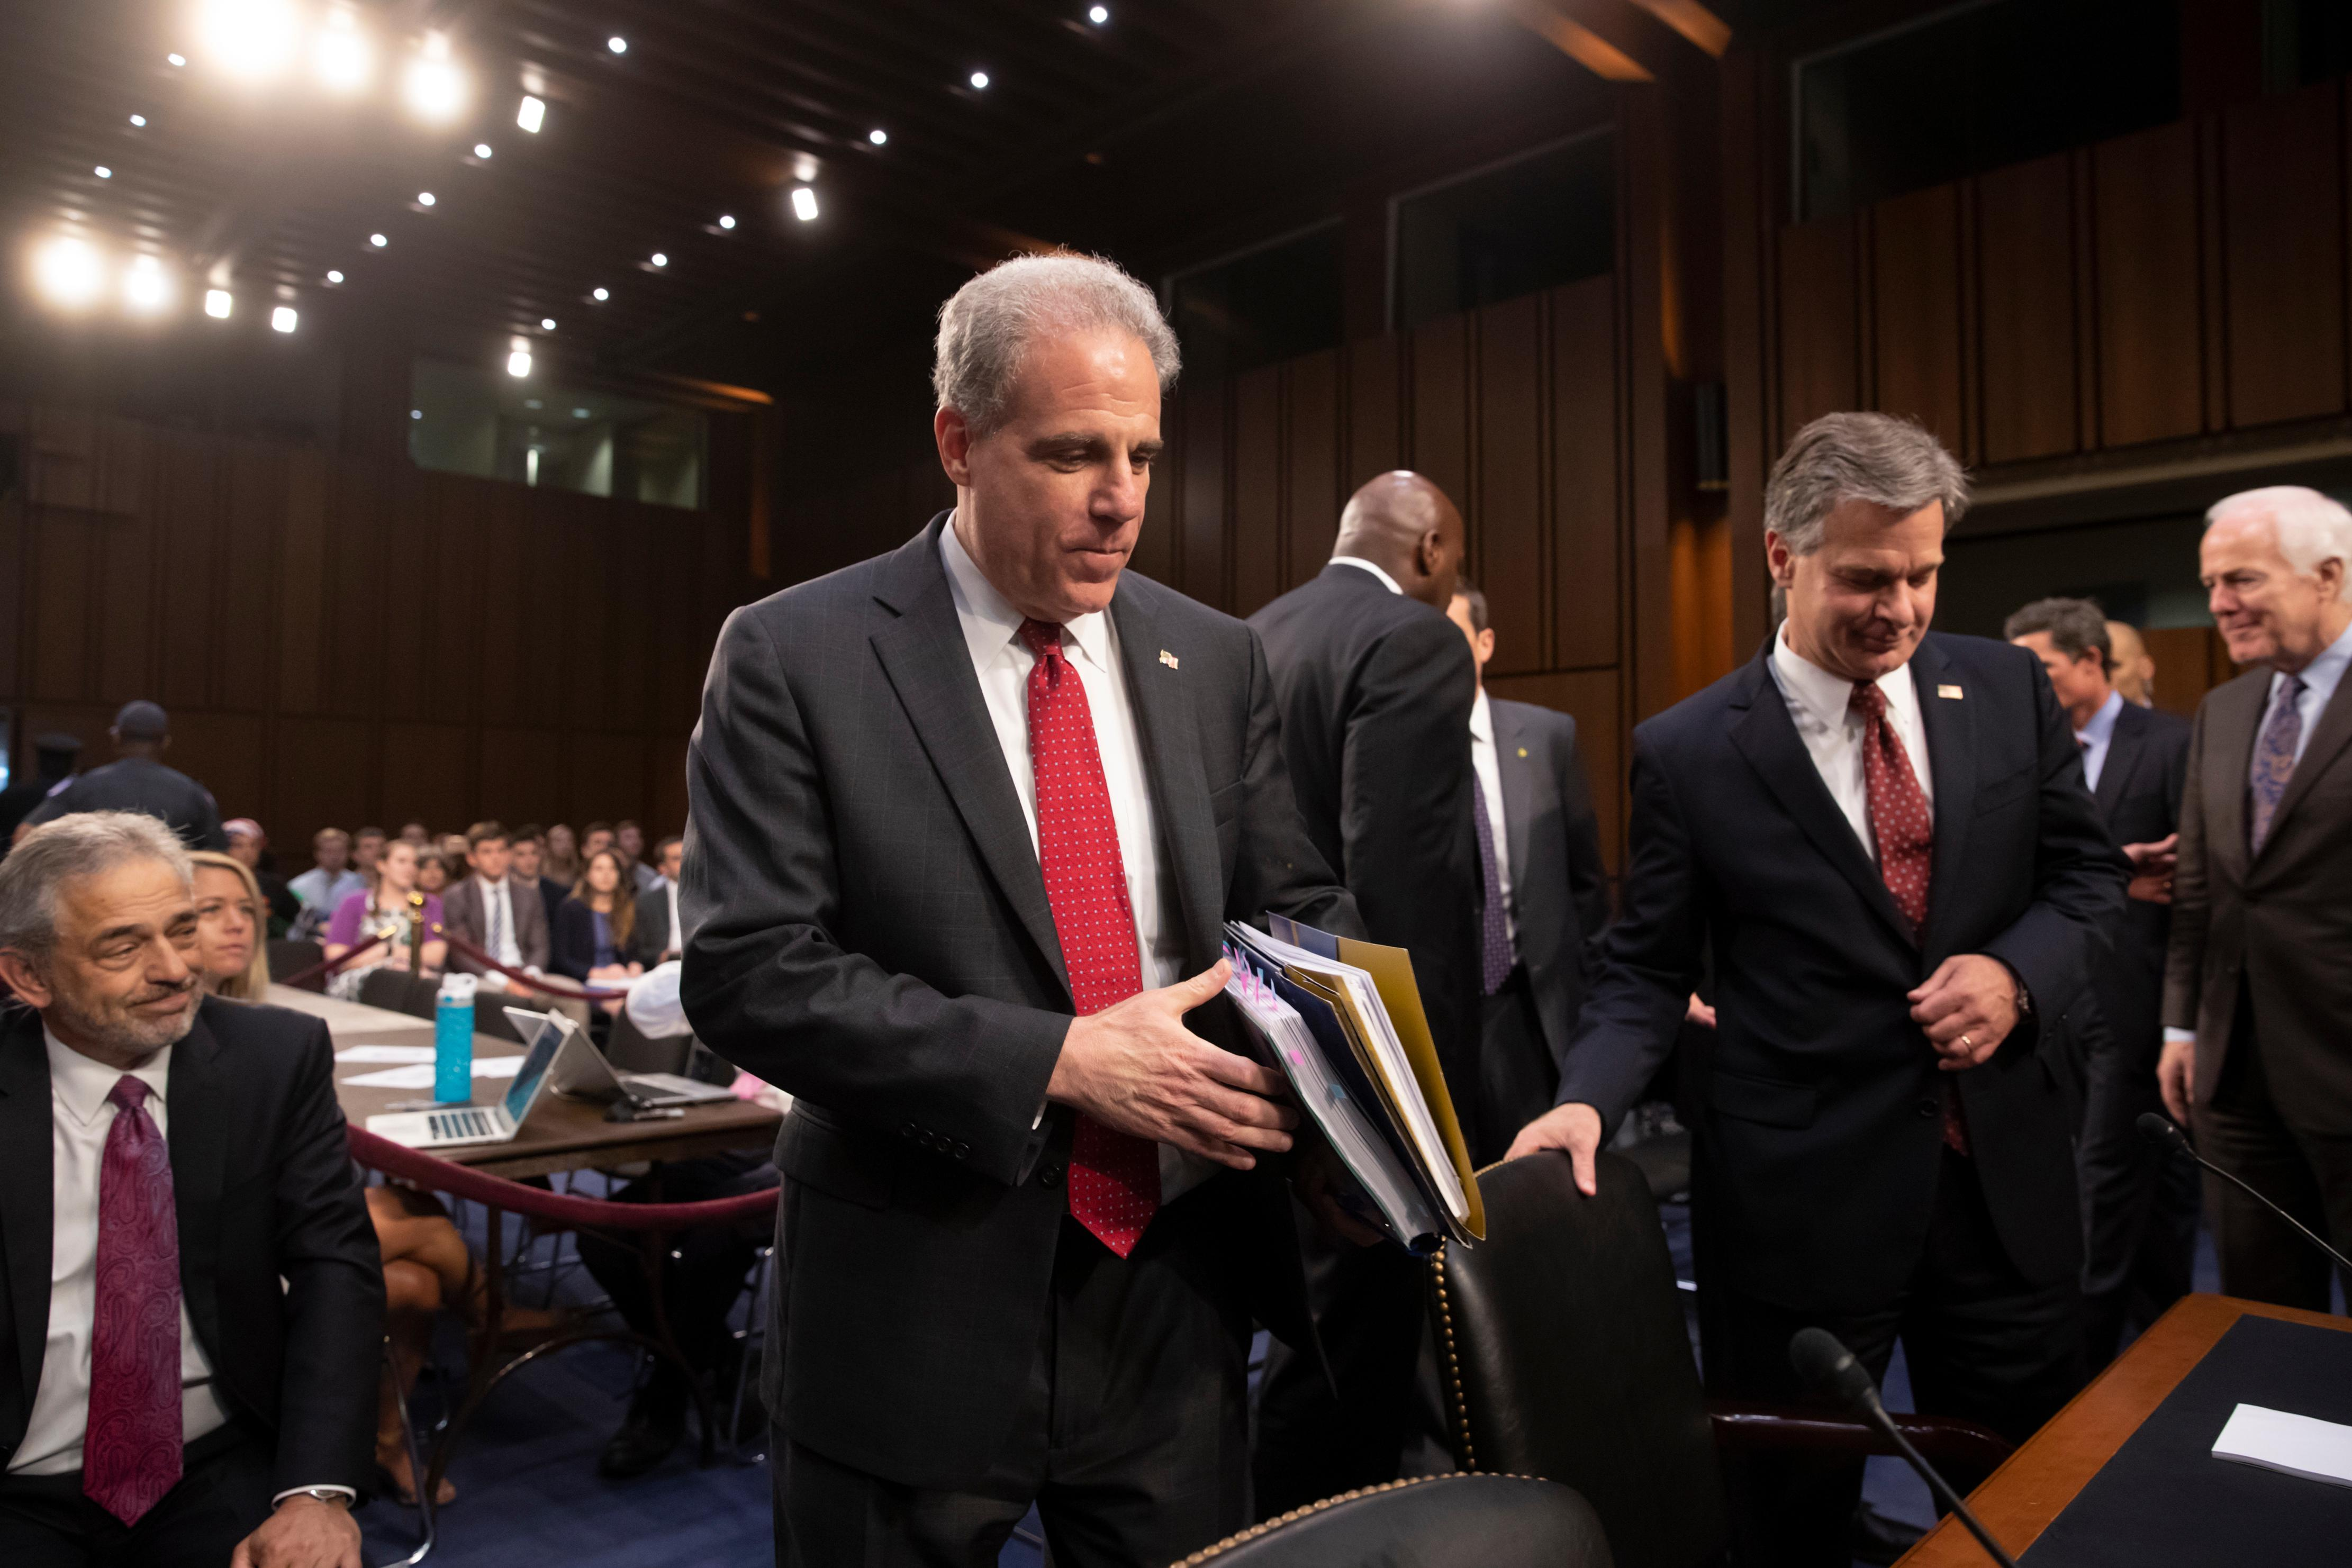 Justice Department Inspector General Michael Horowitz, center, and FBI Director Christopher Wray, right arrive to testify as the Senate Judiciary Committee examines the internal report of the FBI's Clinton email probe and the role of former FBI Director James Comey's actions during the 2016 presidential campaign, on Capitol Hill in Washington, Monday, June 18, 2018. (AP Photo/J. Scott Applewhite)